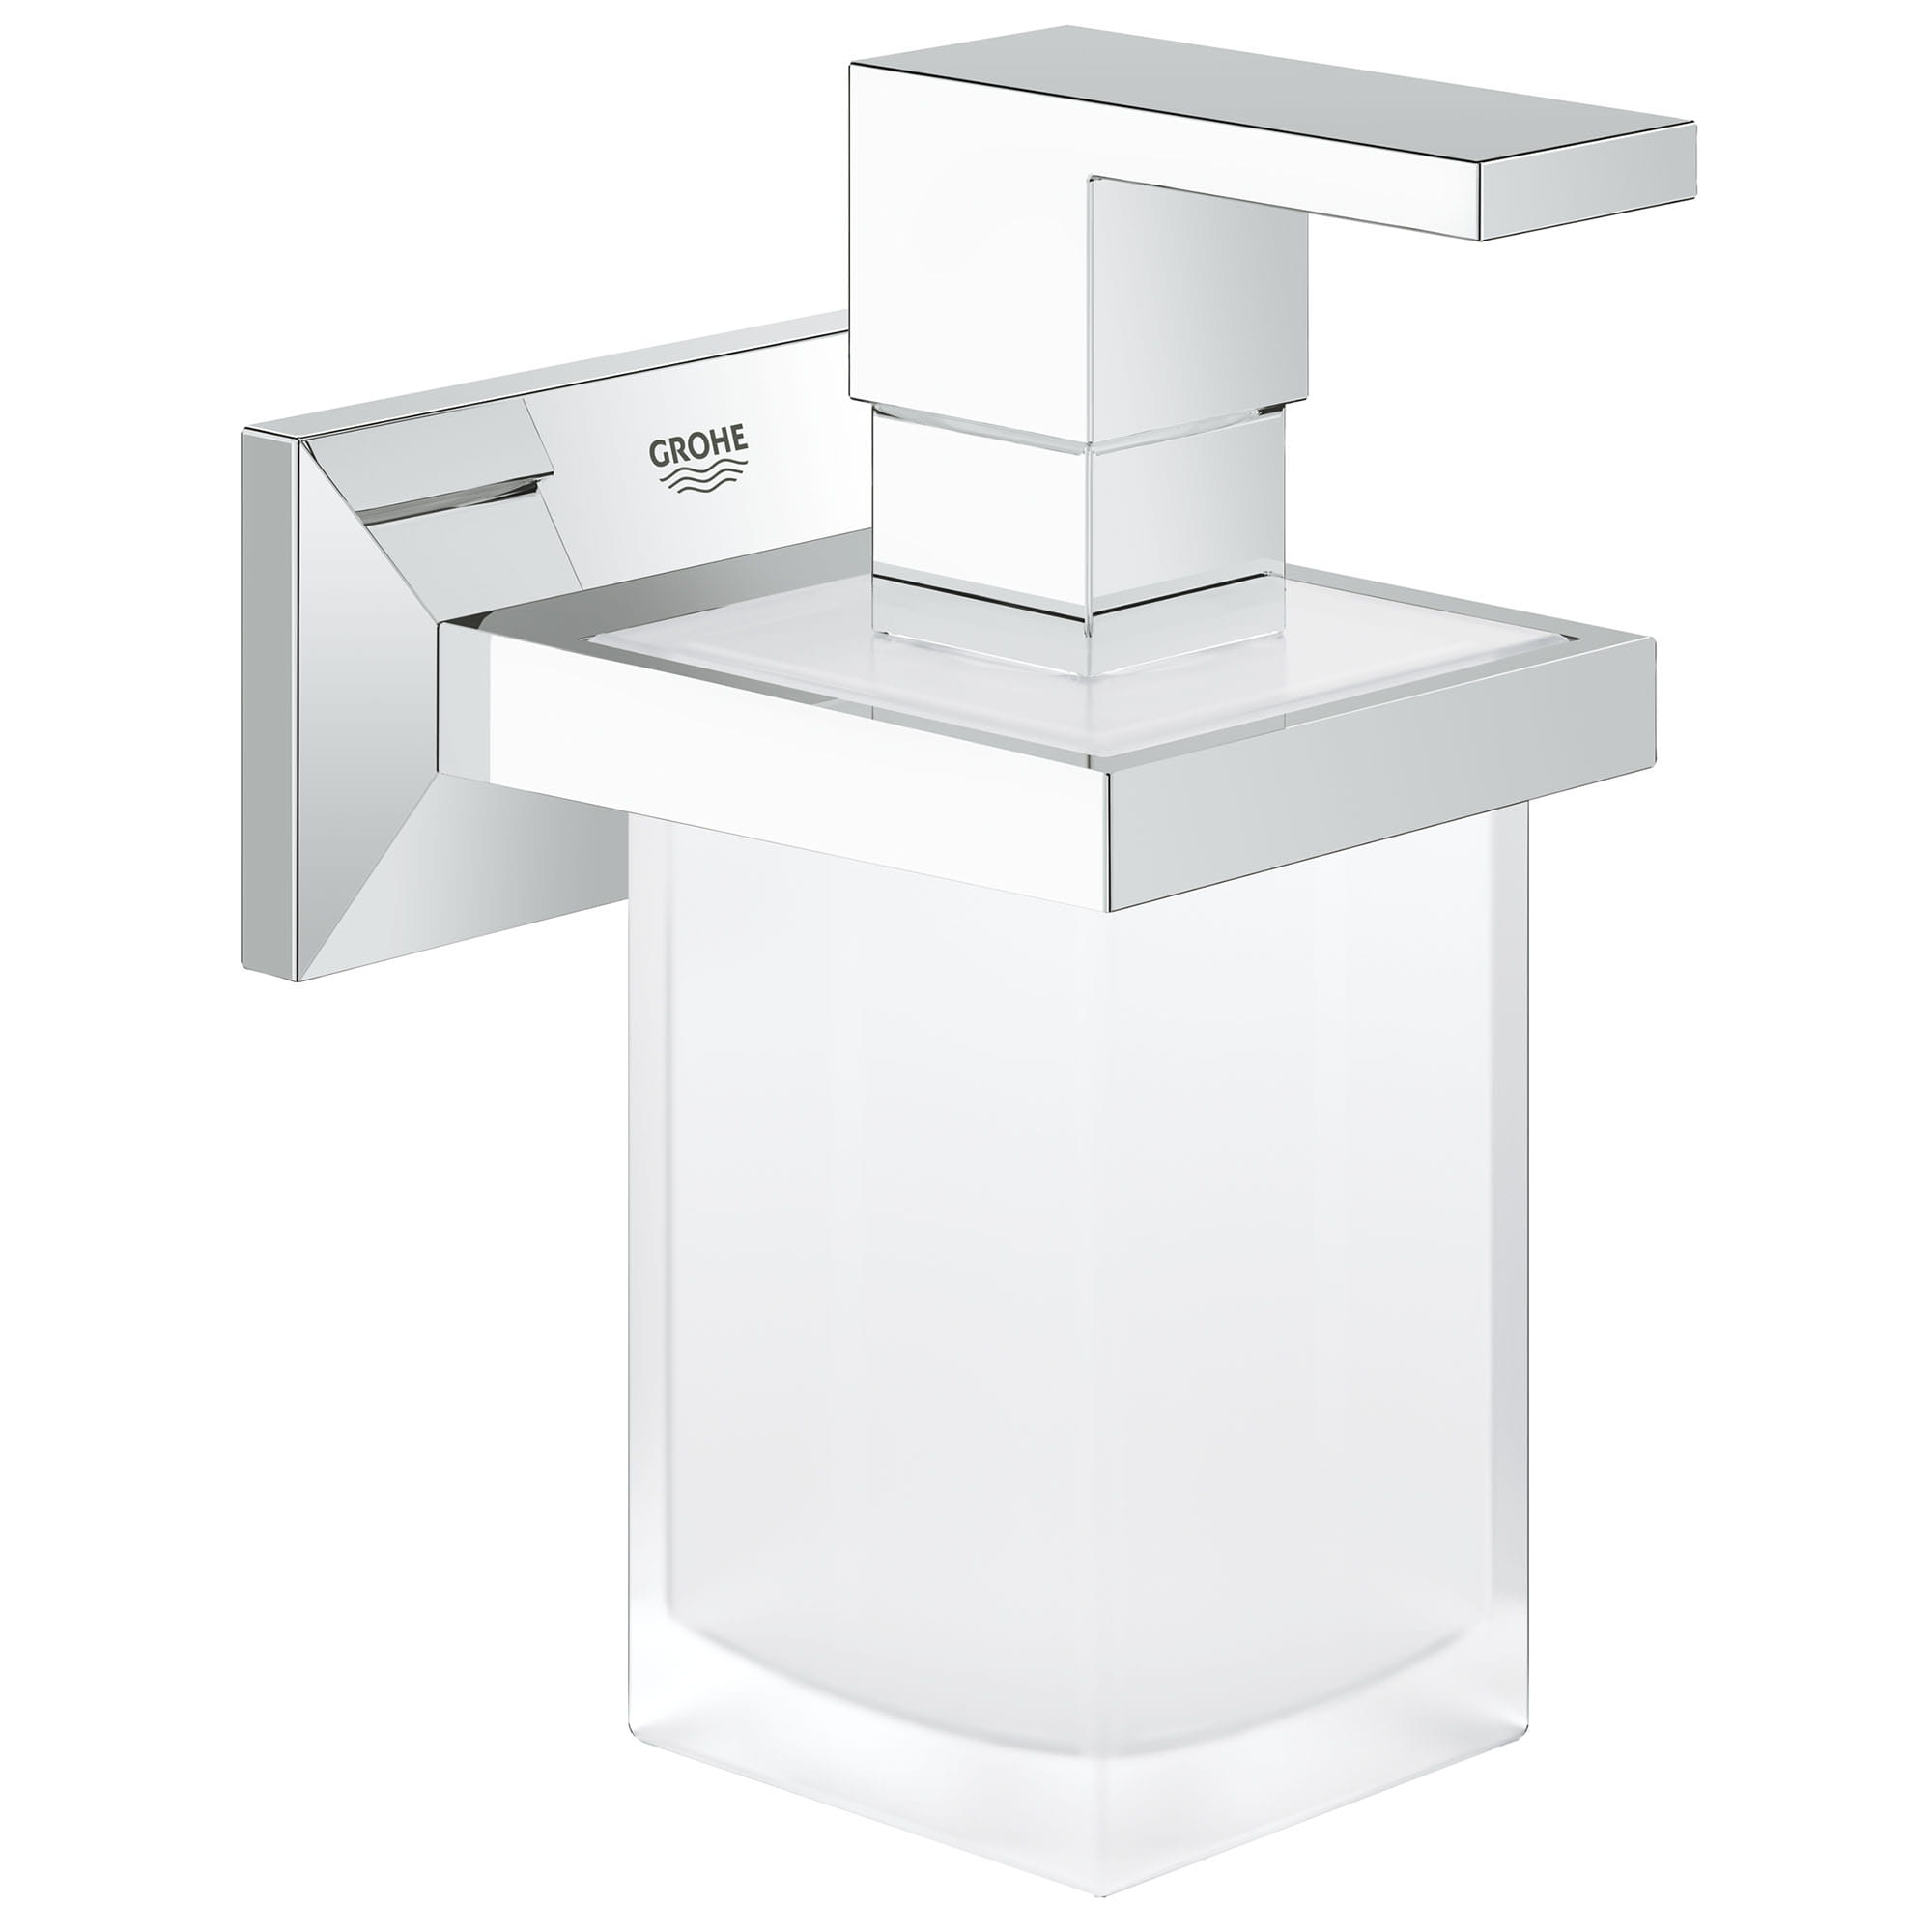 Allure Brilliant Porte savon avec support GROHE CHROME